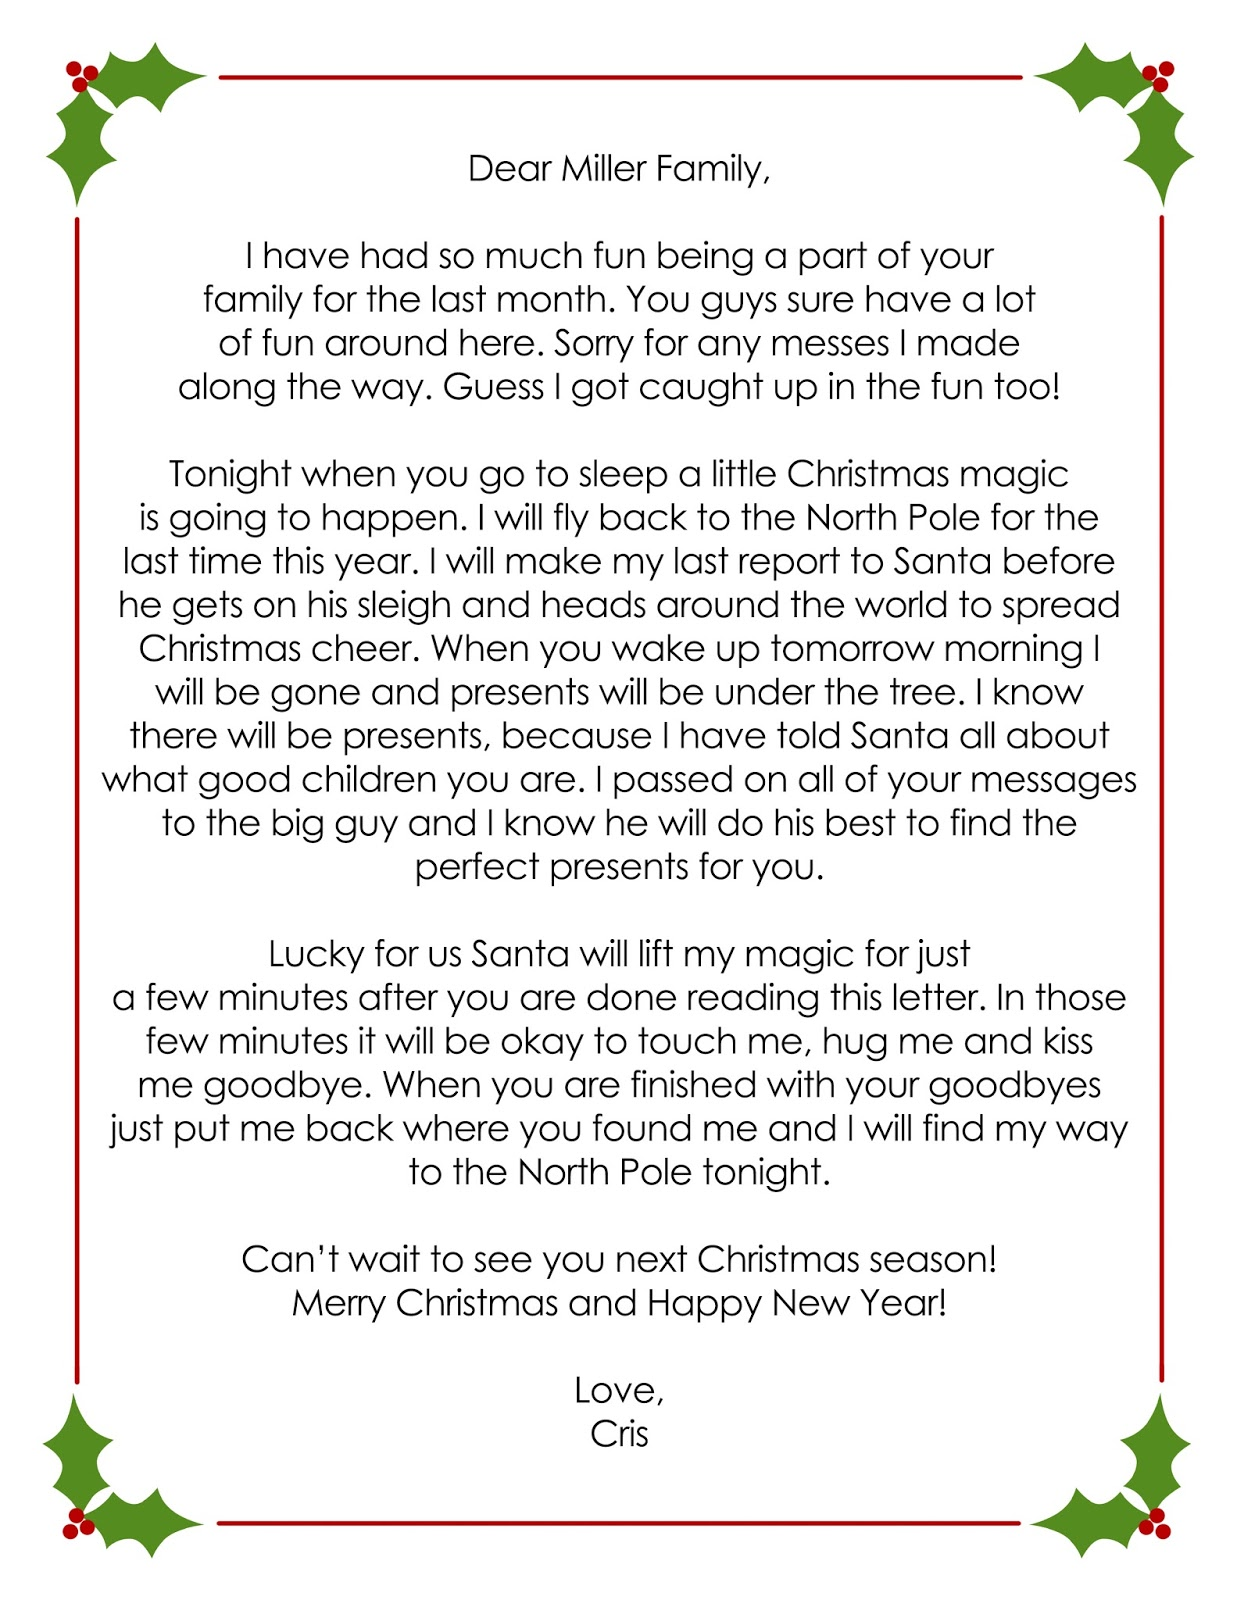 elf on the shelf goodbye letter on the shelf letters letters and other great ideas 10735 | elf shelf goodbye 11